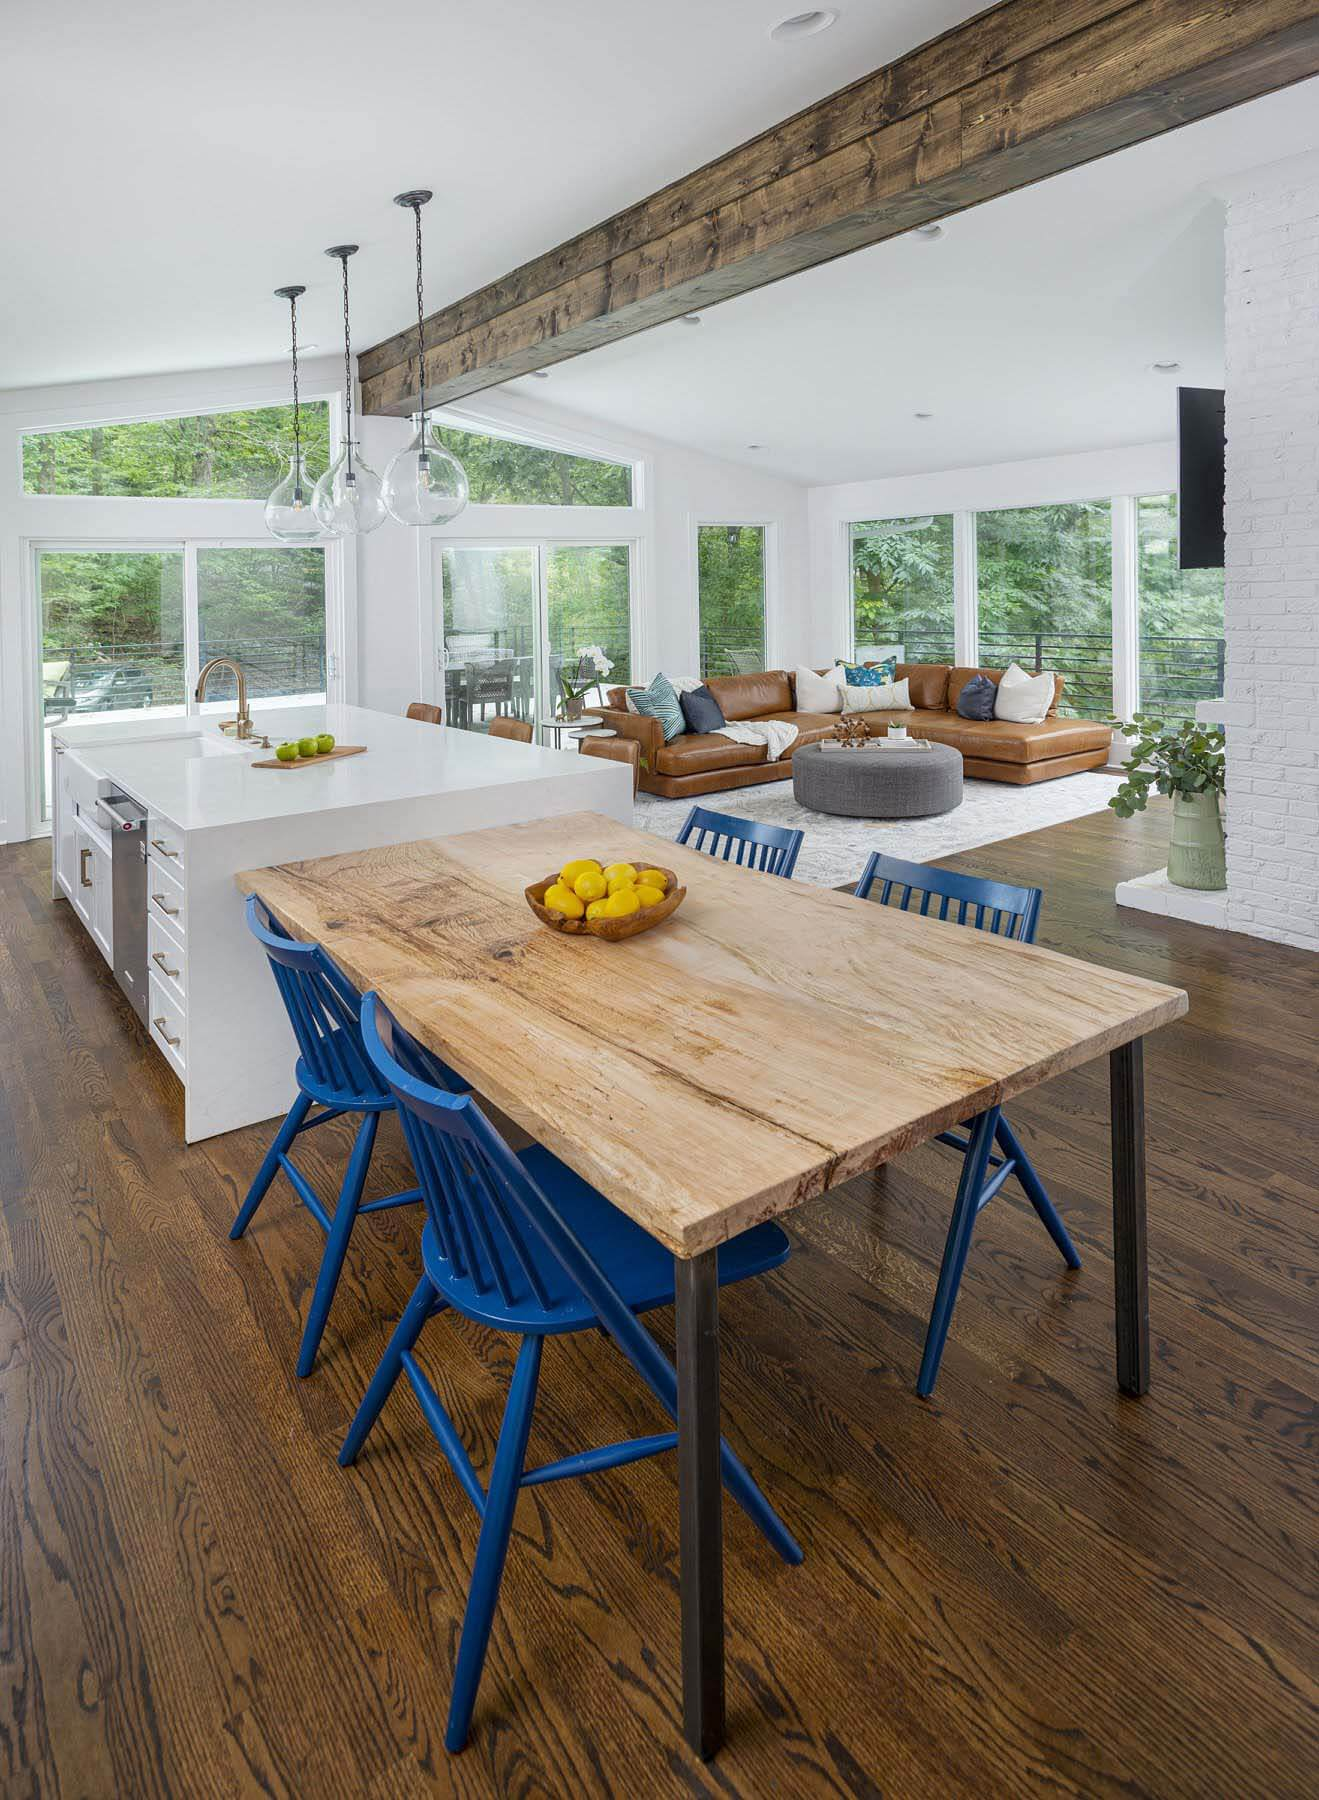 beth haley design project — kitchen and living room